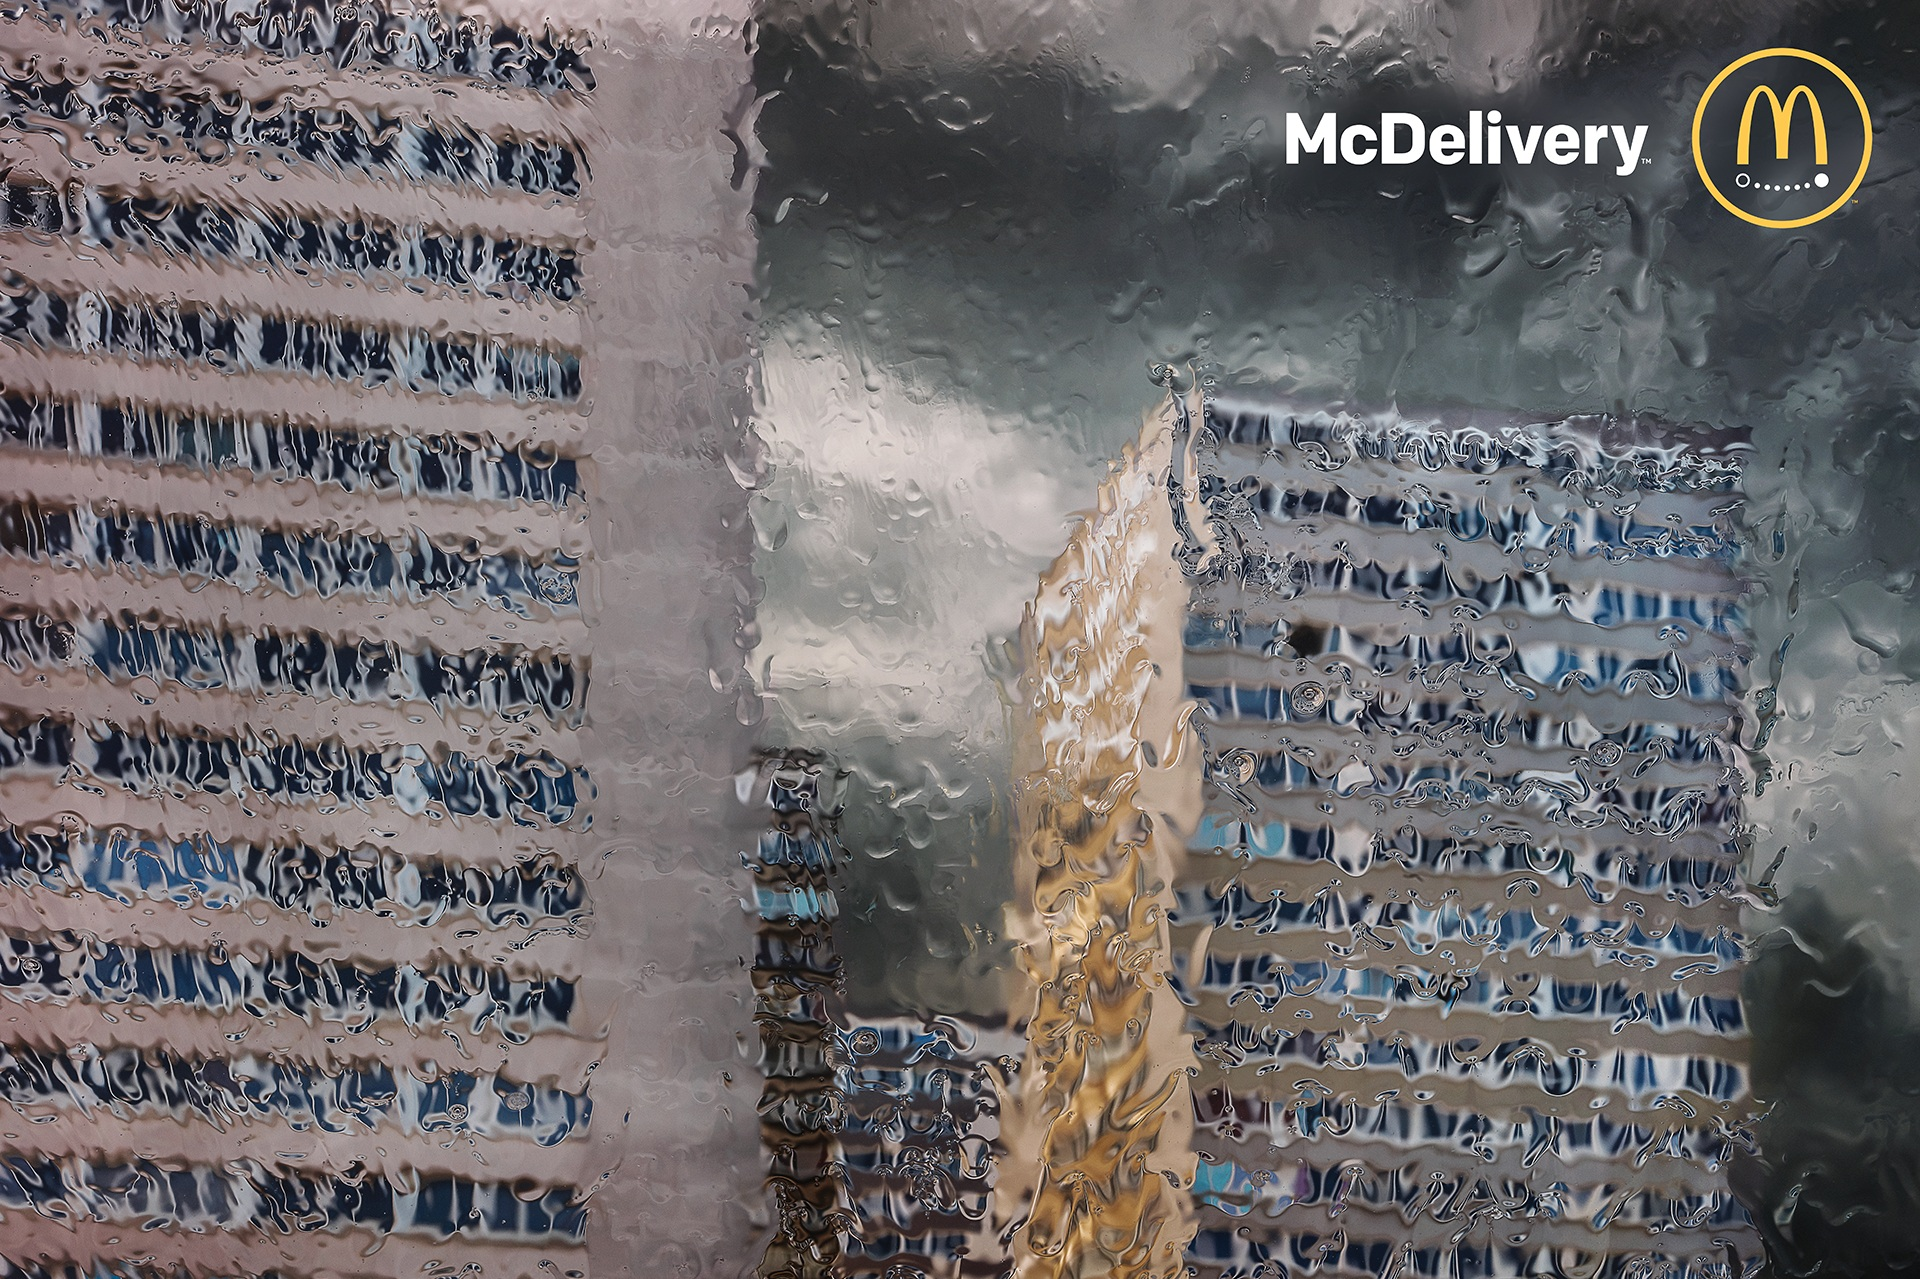 Laurence Green of MullenLowe: my Top Tips for Cannes - May 7, 2019MullenLowe London Executive Partner Laurence Green highlights TBWA\Paris for its recent McDelivery print campaign in the lead up to Cannes.